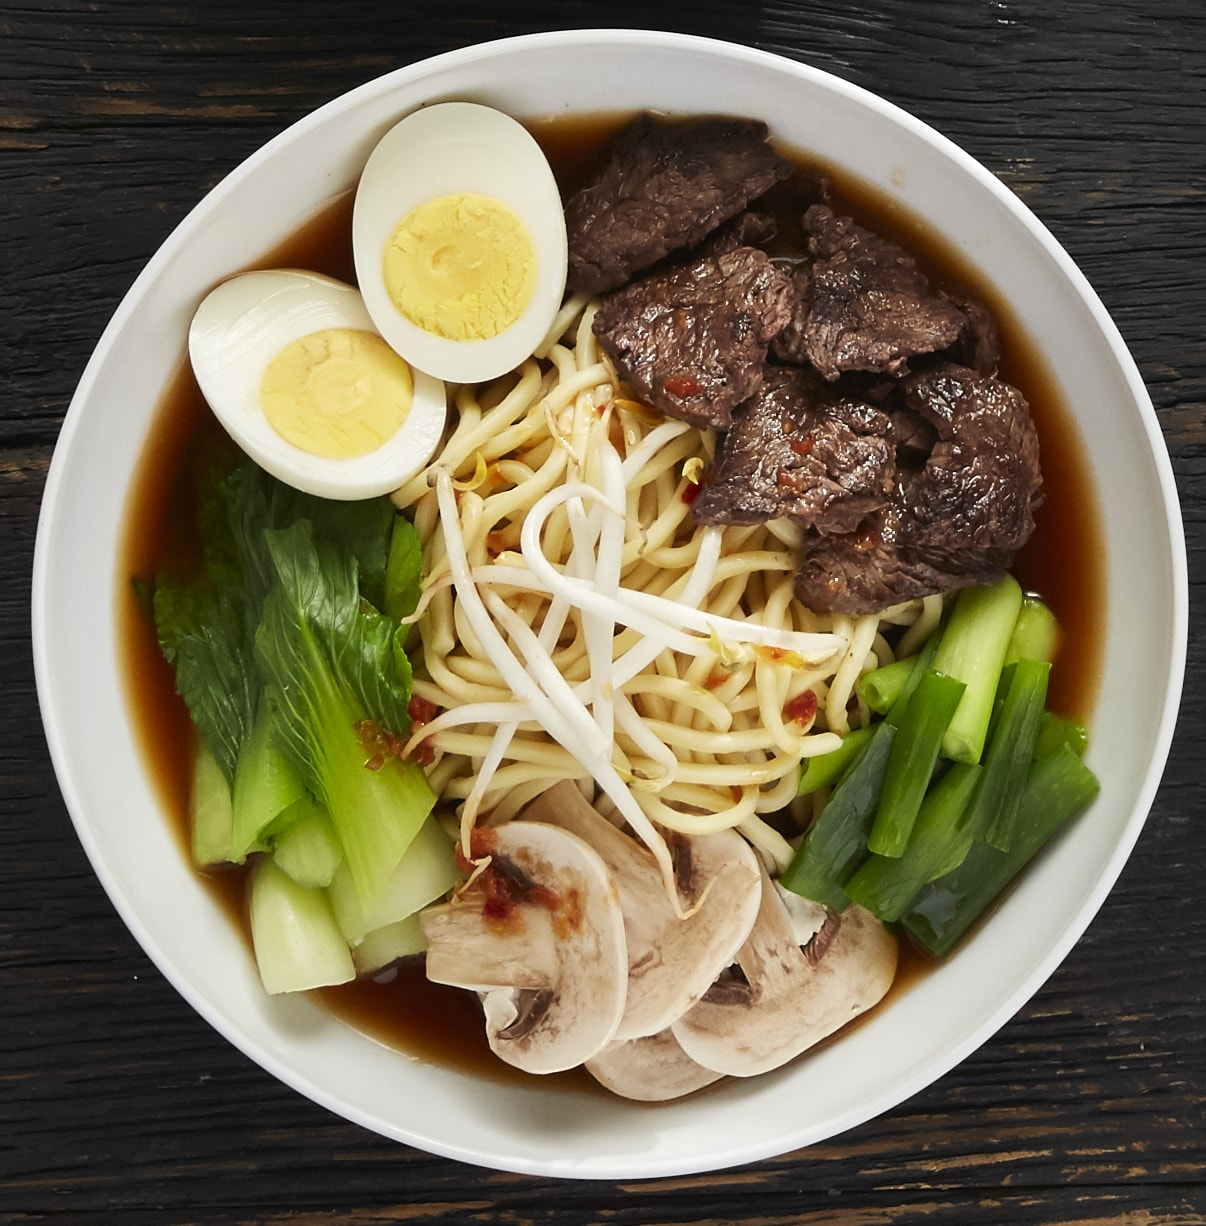 Tin Drum Asian Kitchen Celebrates the Holiday Season With Four New Warm Bowls